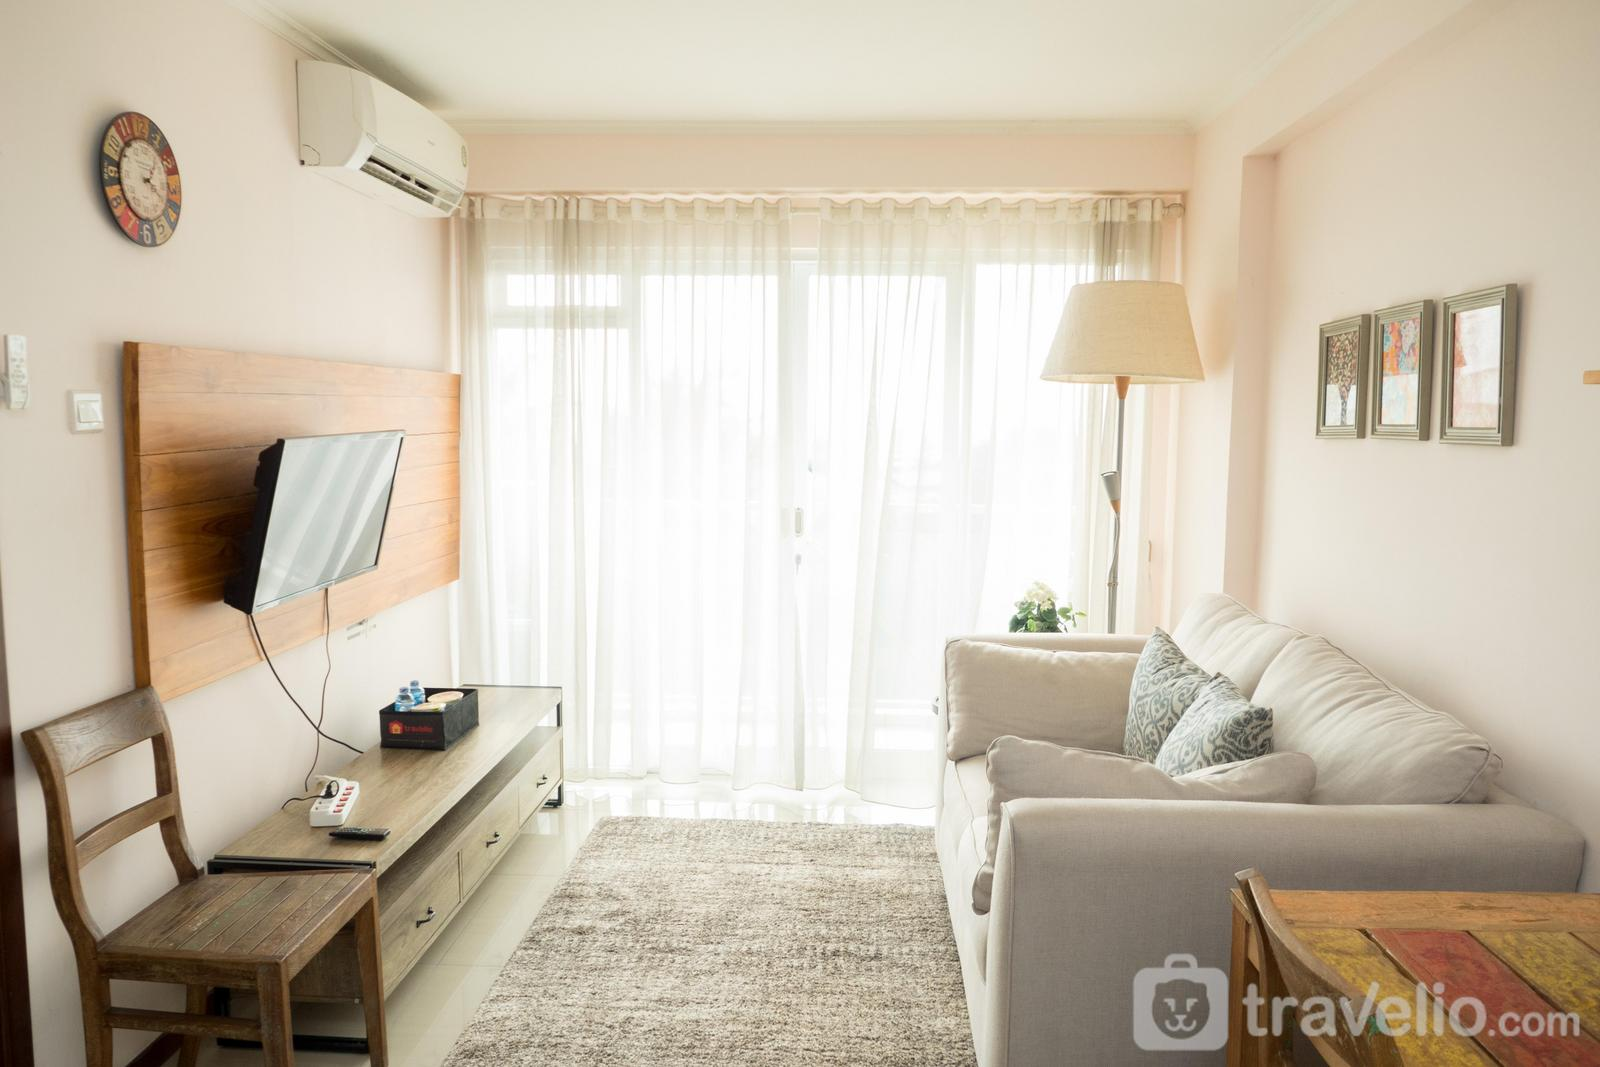 Gateway Pasteur Apartment - Homey 2BR with Private Roof Garden Gateway Pasteur Apartment By Travelio